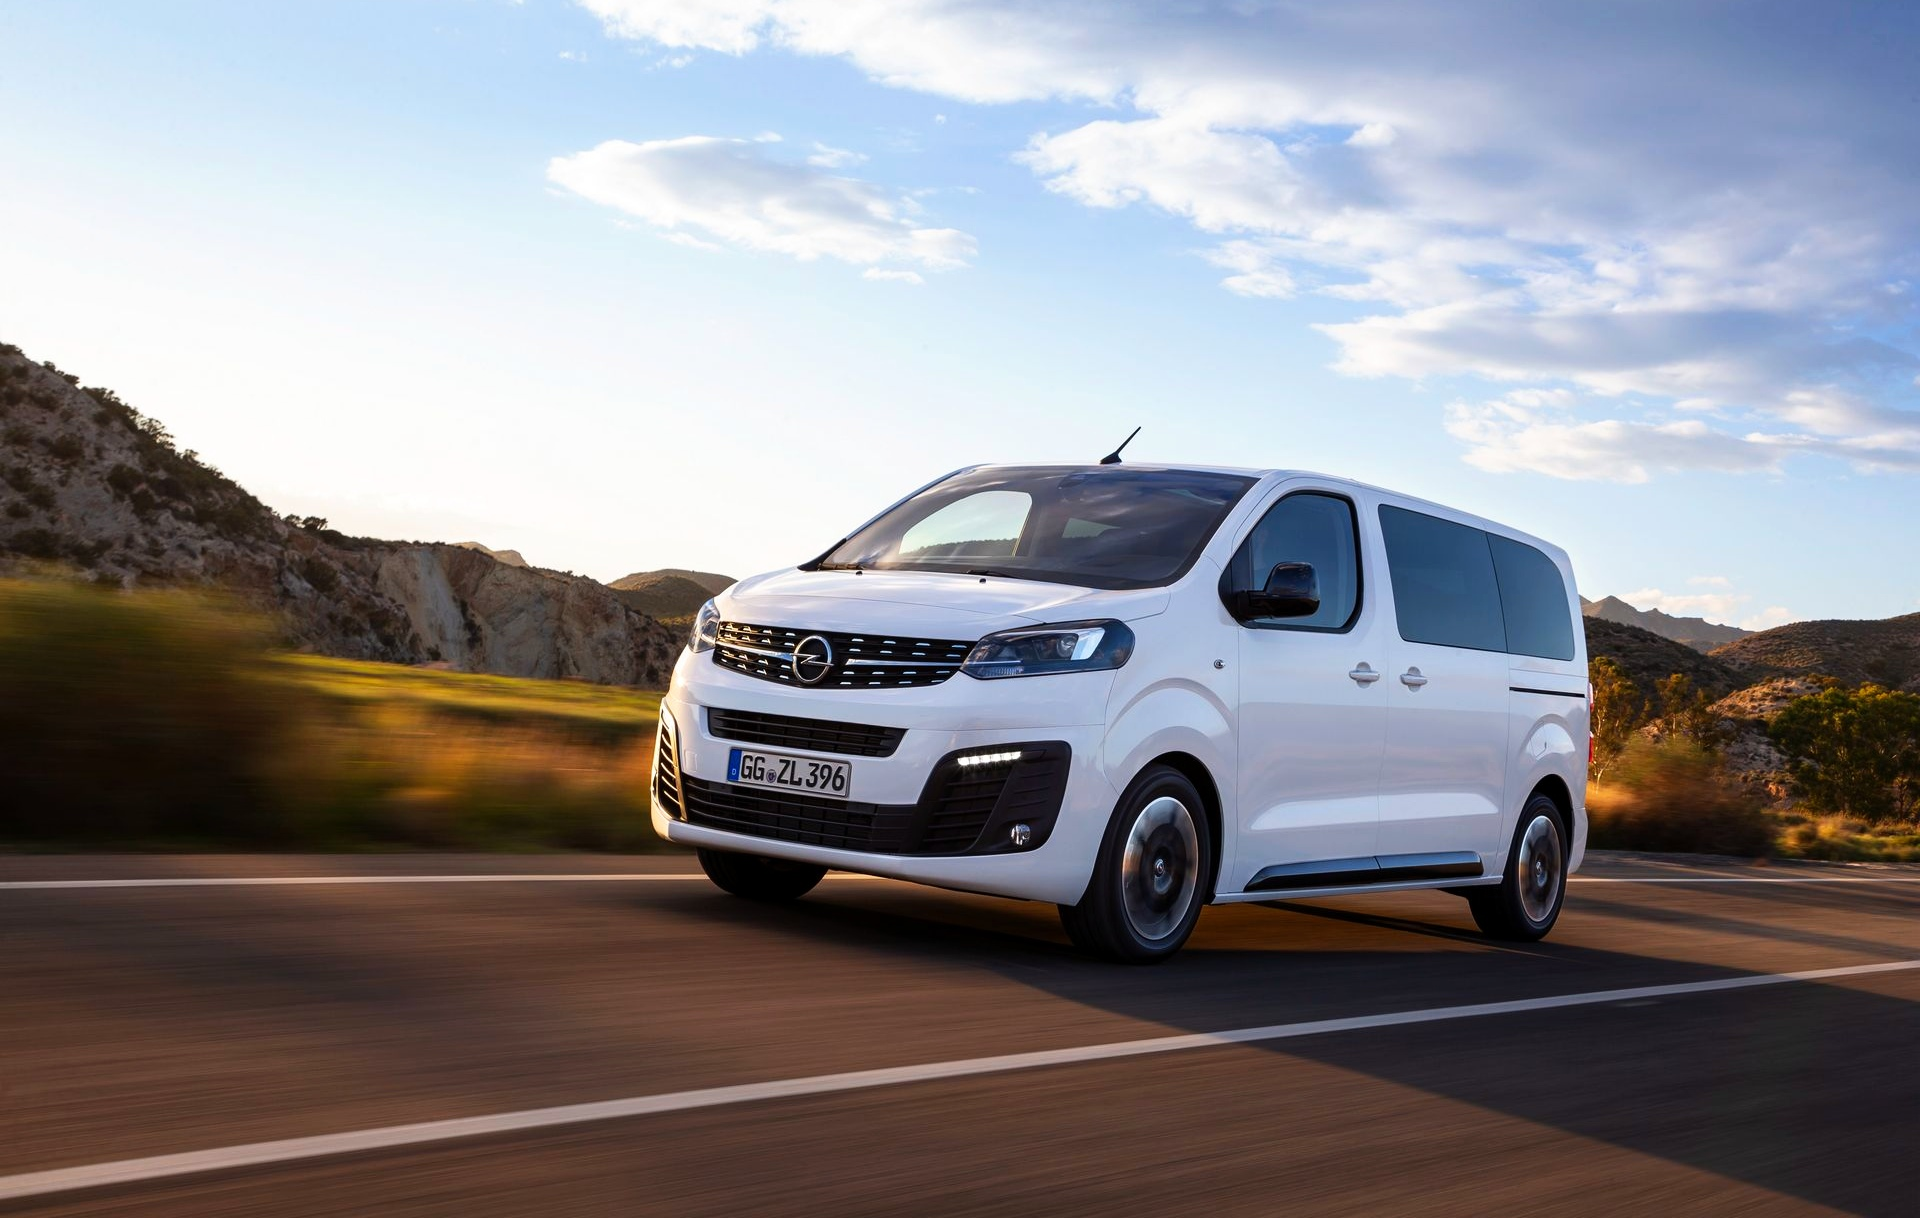 25 New Nowy Opel Zafira 2020 Prices for Nowy Opel Zafira 2020